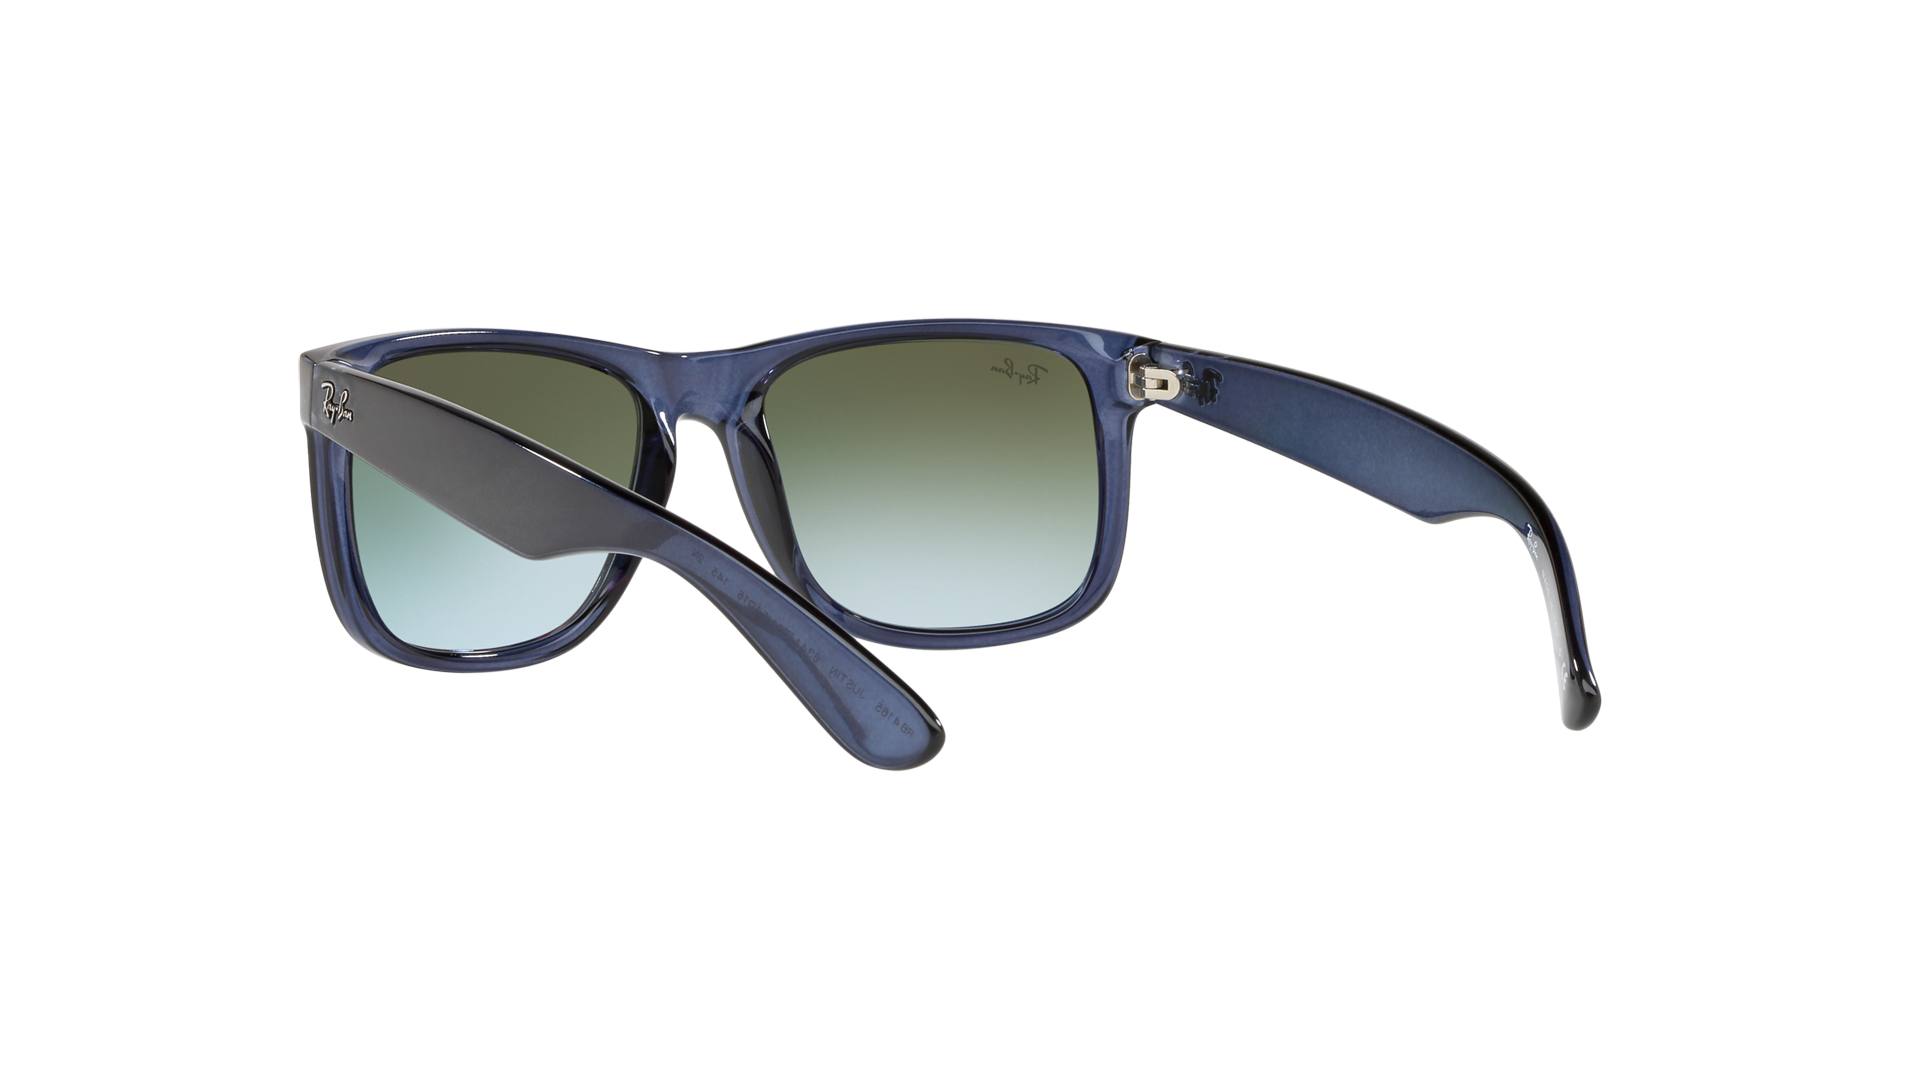 4decf224f9 ... where can i buy sunglasses ray ban justin flash gradient lenses blue  rb4165 6341 t0 54